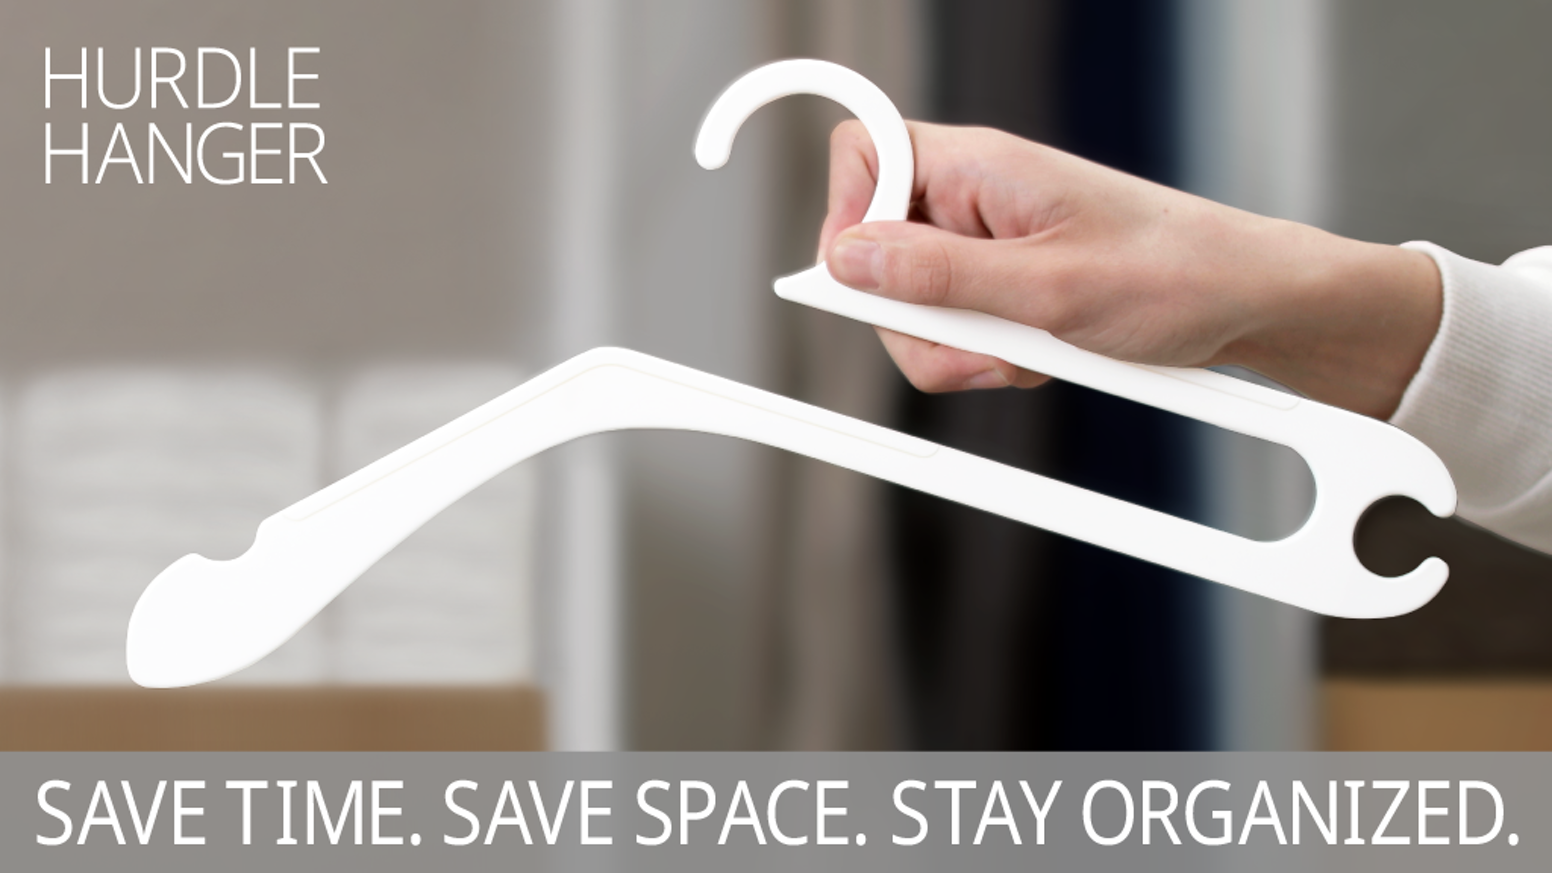 A strong, all-purpose hanger designed to help you save time, save space, and stay organized.